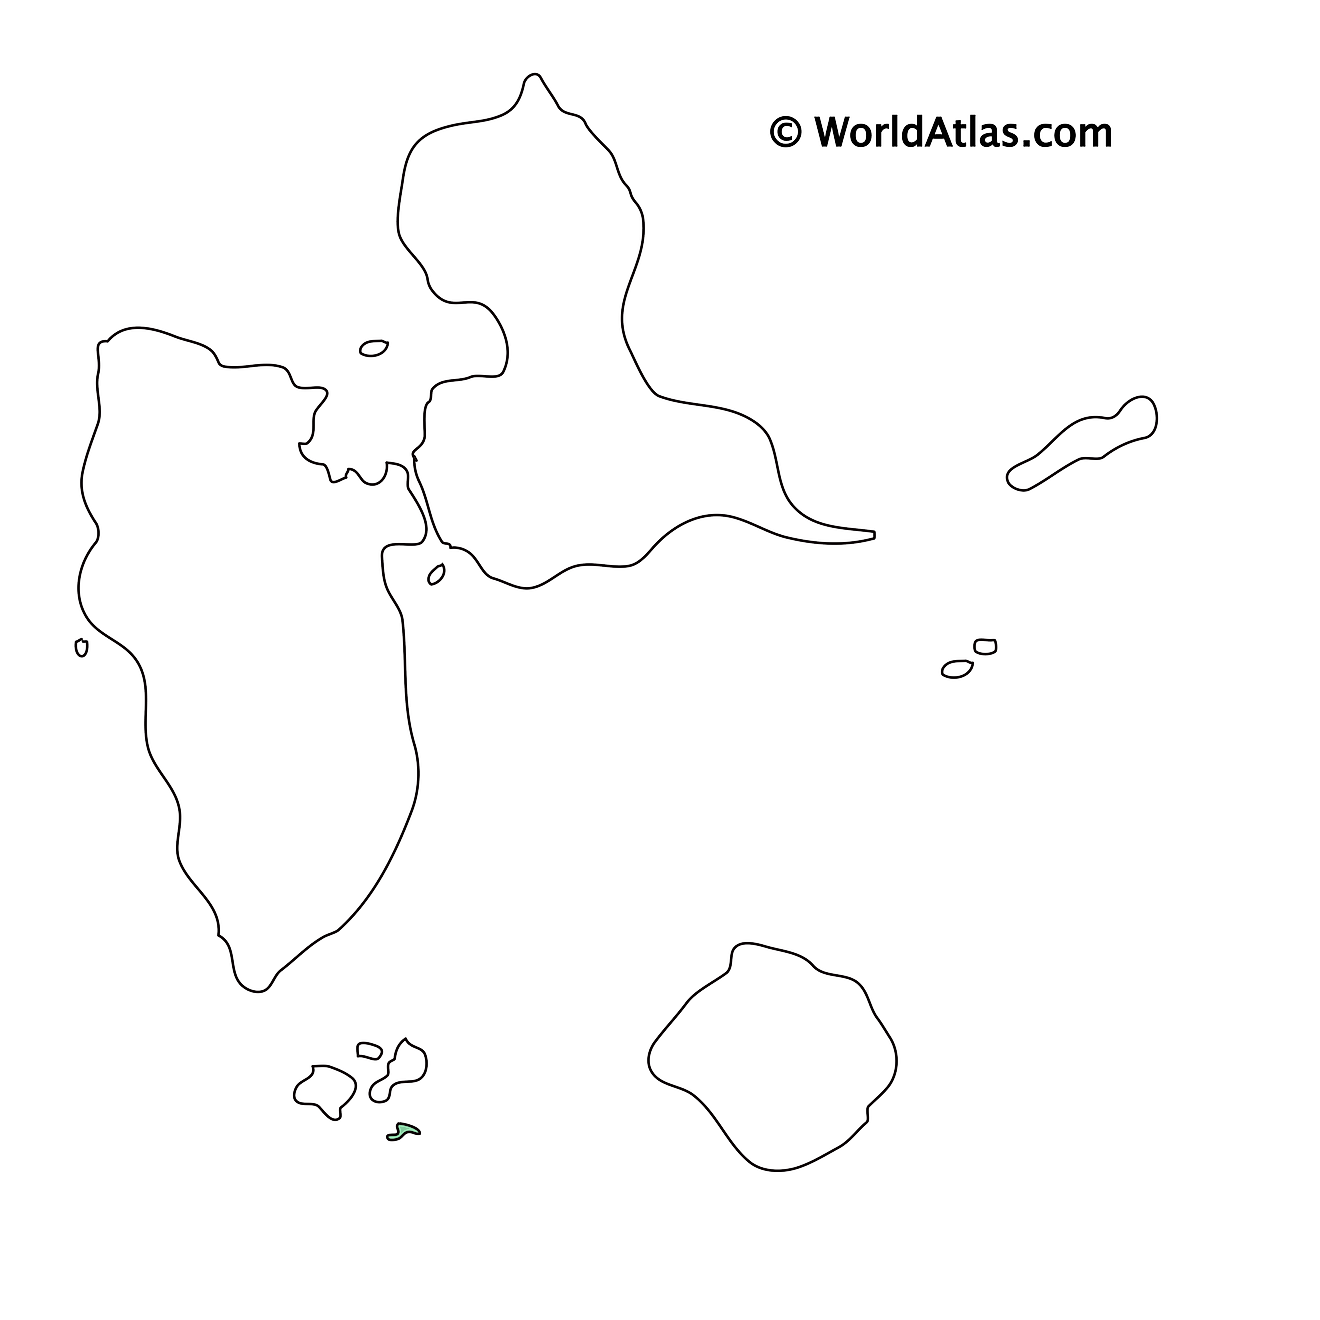 Blank Outline Map of Guadeloupe